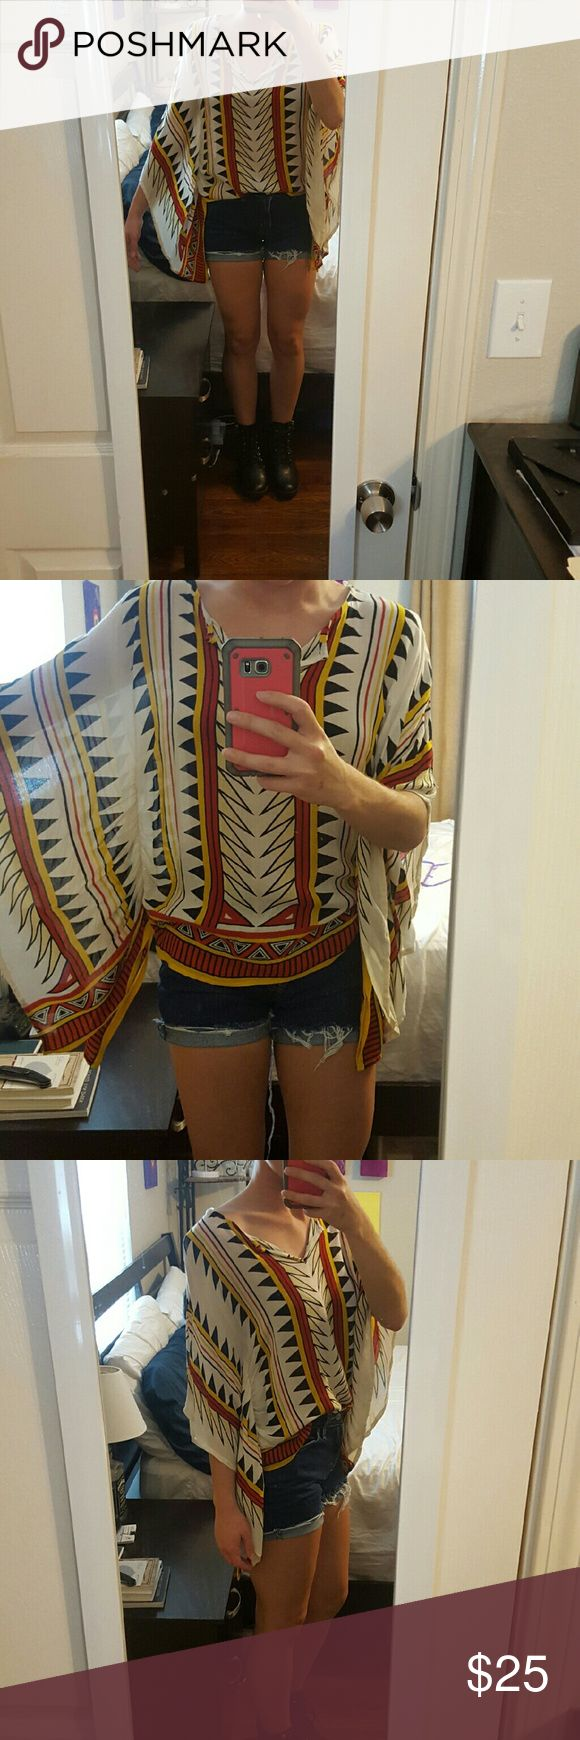 Tribal Bohemian Blouse Colors- Off White, Black, Mustard Yellow, Red, Yellow. Thin material. 100% Rayon Earthbound Trading Company  Tops Blouses